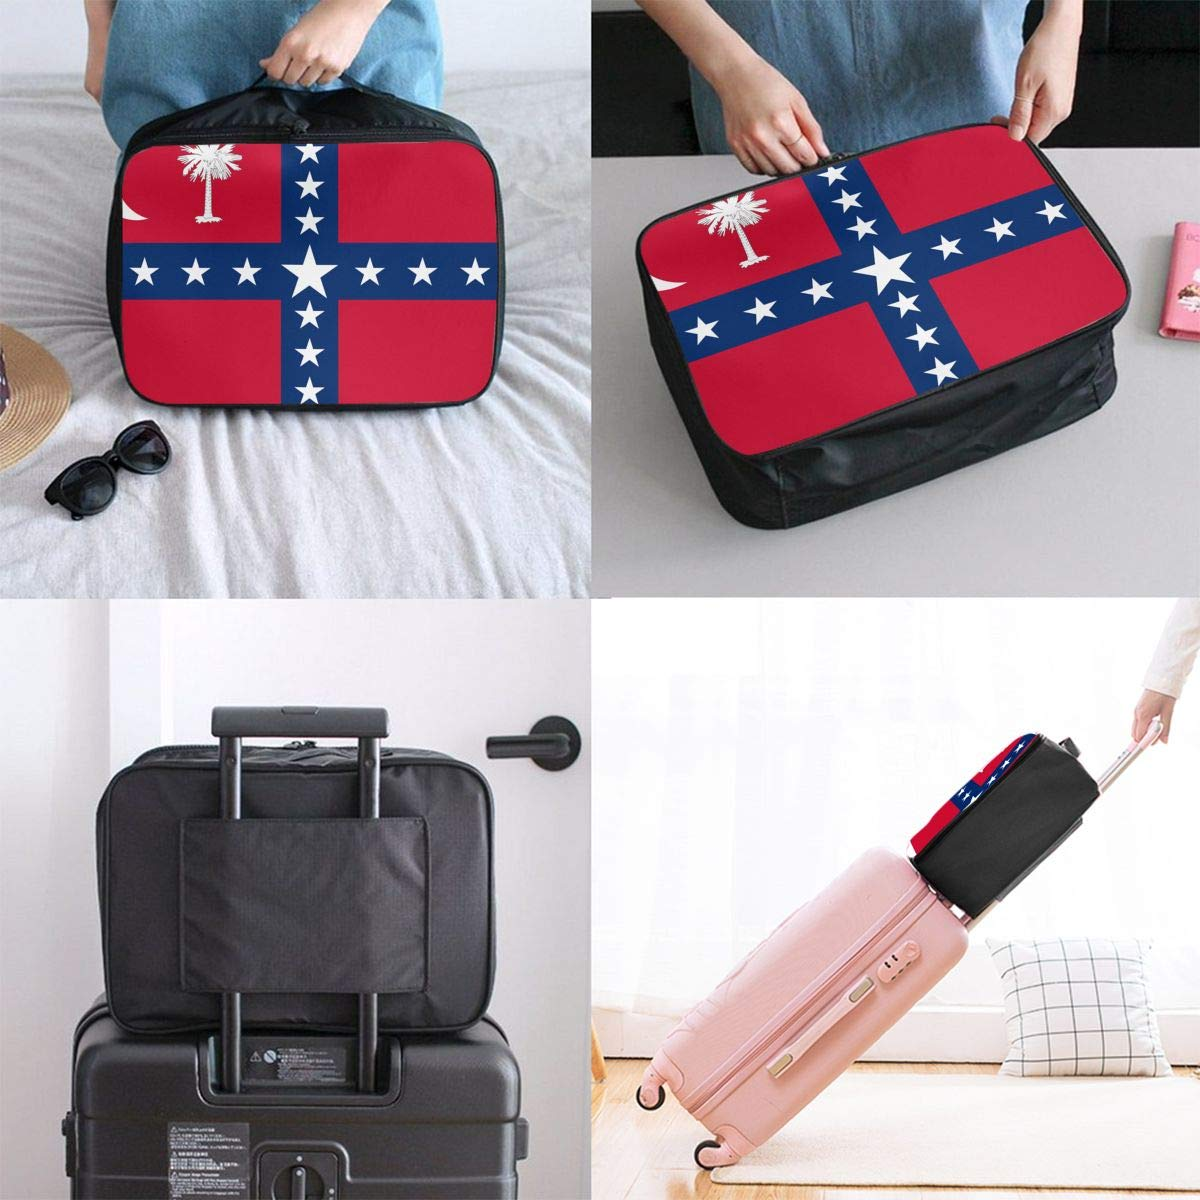 South Carolina Succession Flag Travel Pouch Carry-on Duffle Bag Lightweight Waterproof Portable Luggage Bag Attach To Suitcase